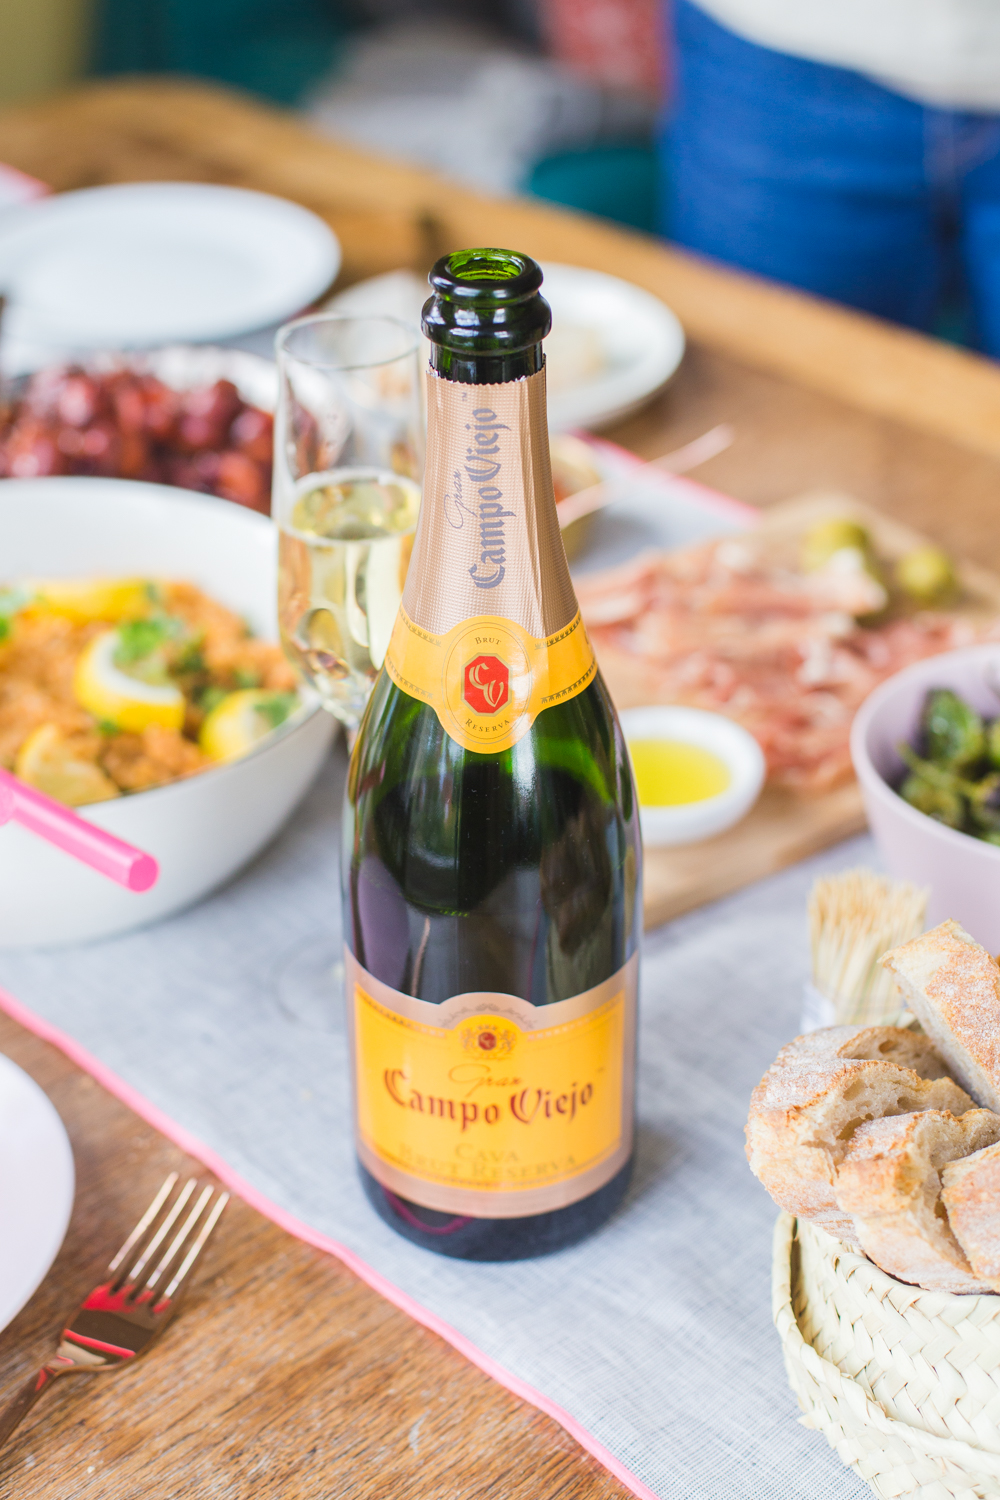 Fancy cooking an easy Spanish feast? I'm sharing some tasty recipes for chicken, chorizo and padron peppers plus the perfect sparkling Campo Viejo cava to complement everything.